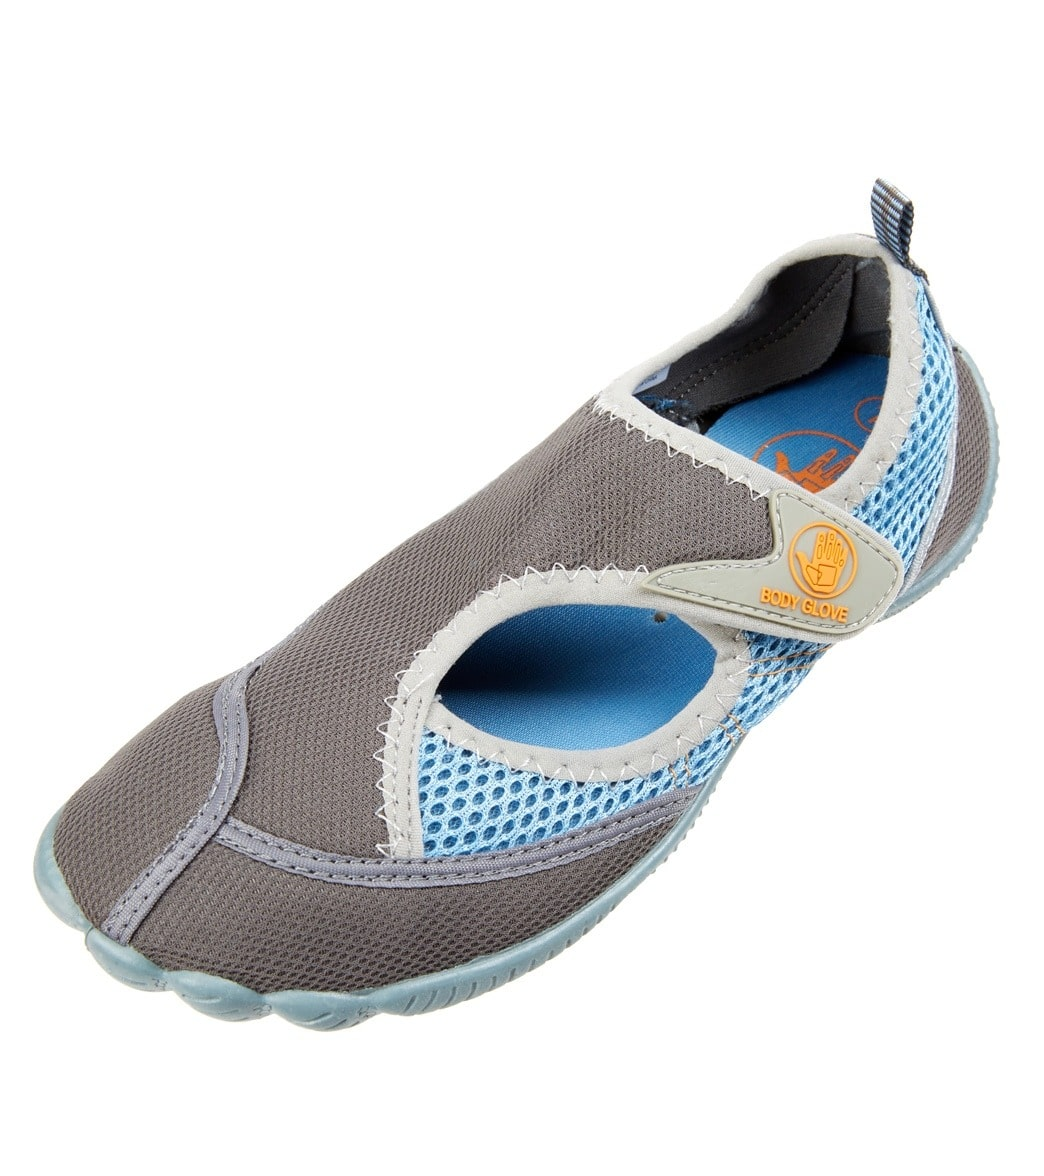 Girls' Water Shoes & Sandals at SwimOutlet.com